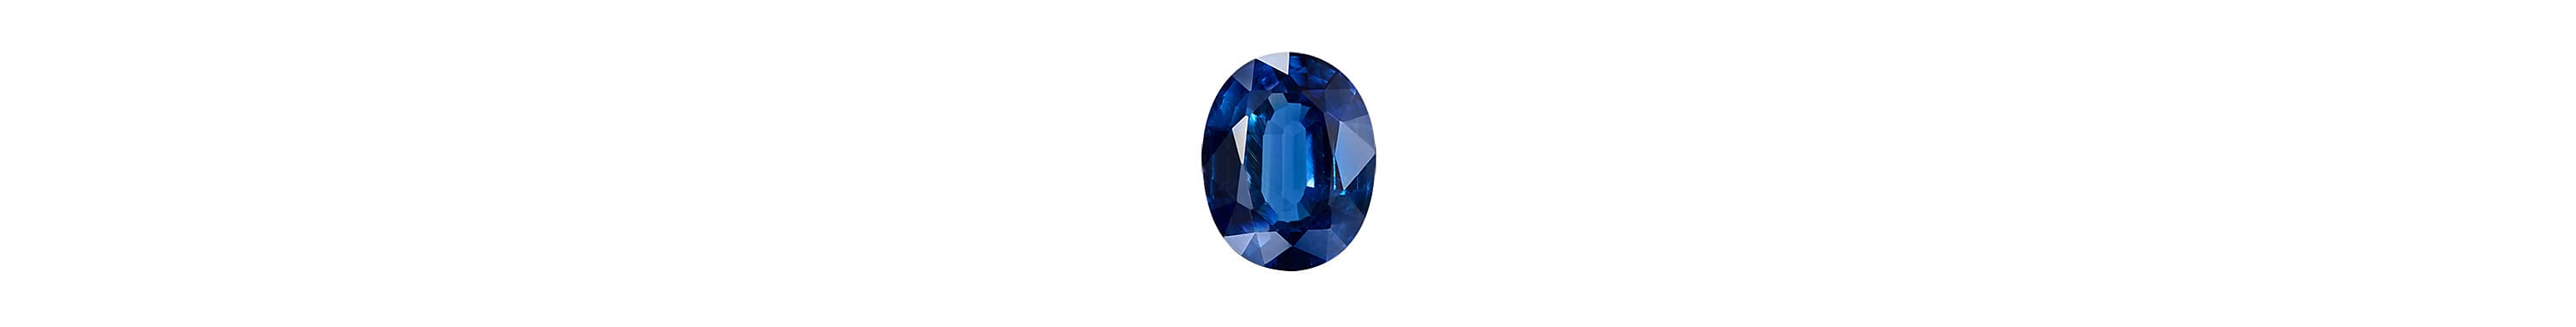 A color photograph shows a close-up shot of an oval-cut blue sapphire on a white background.